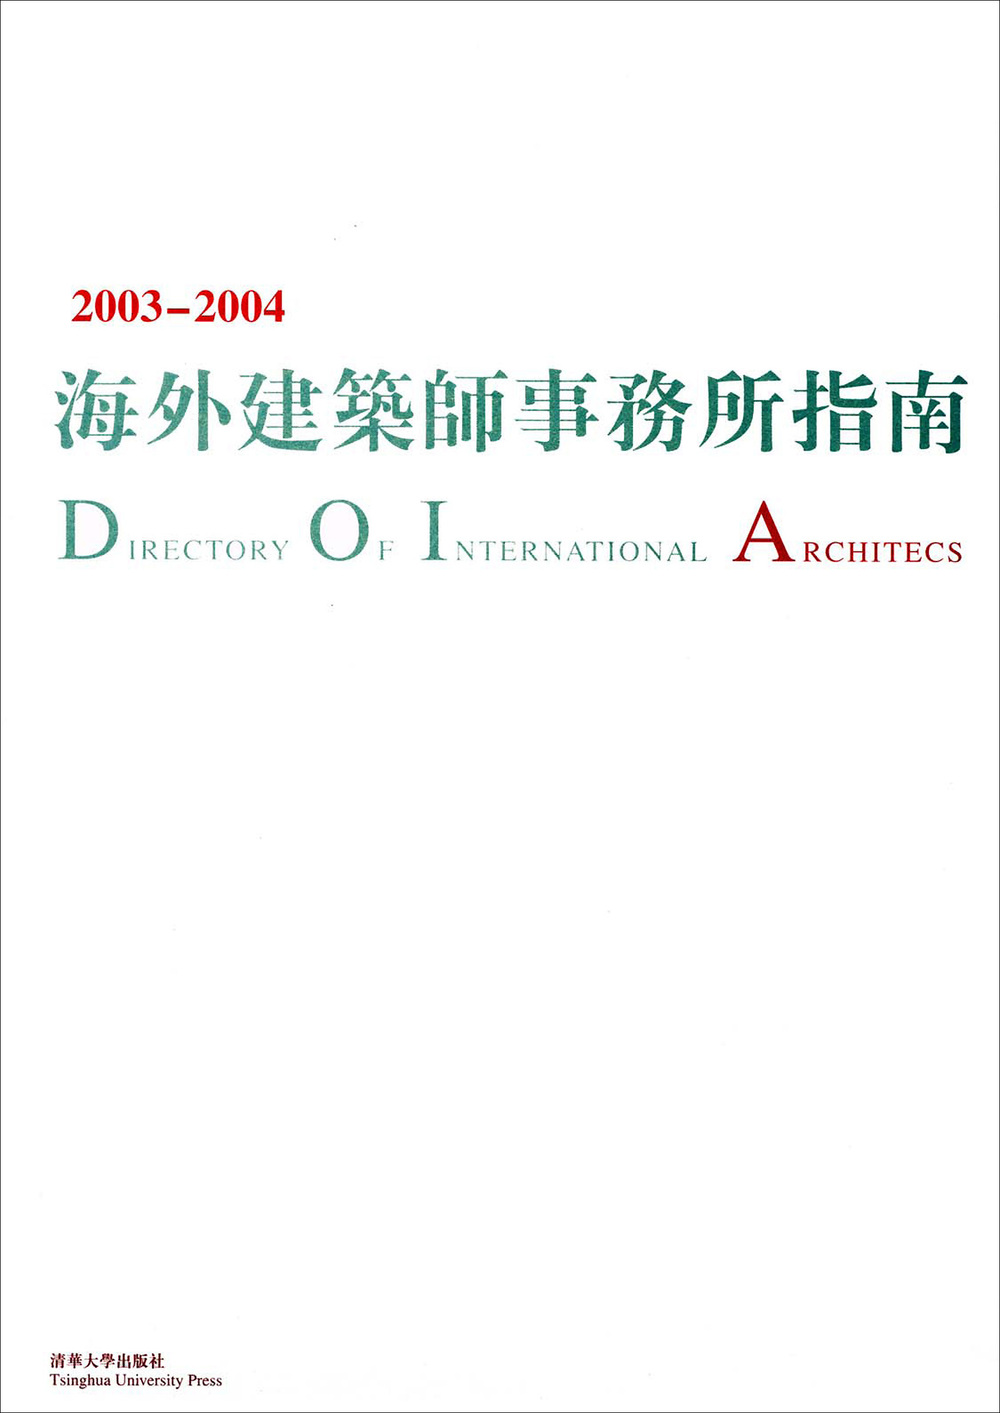 Directory of International Architects 2003-2004